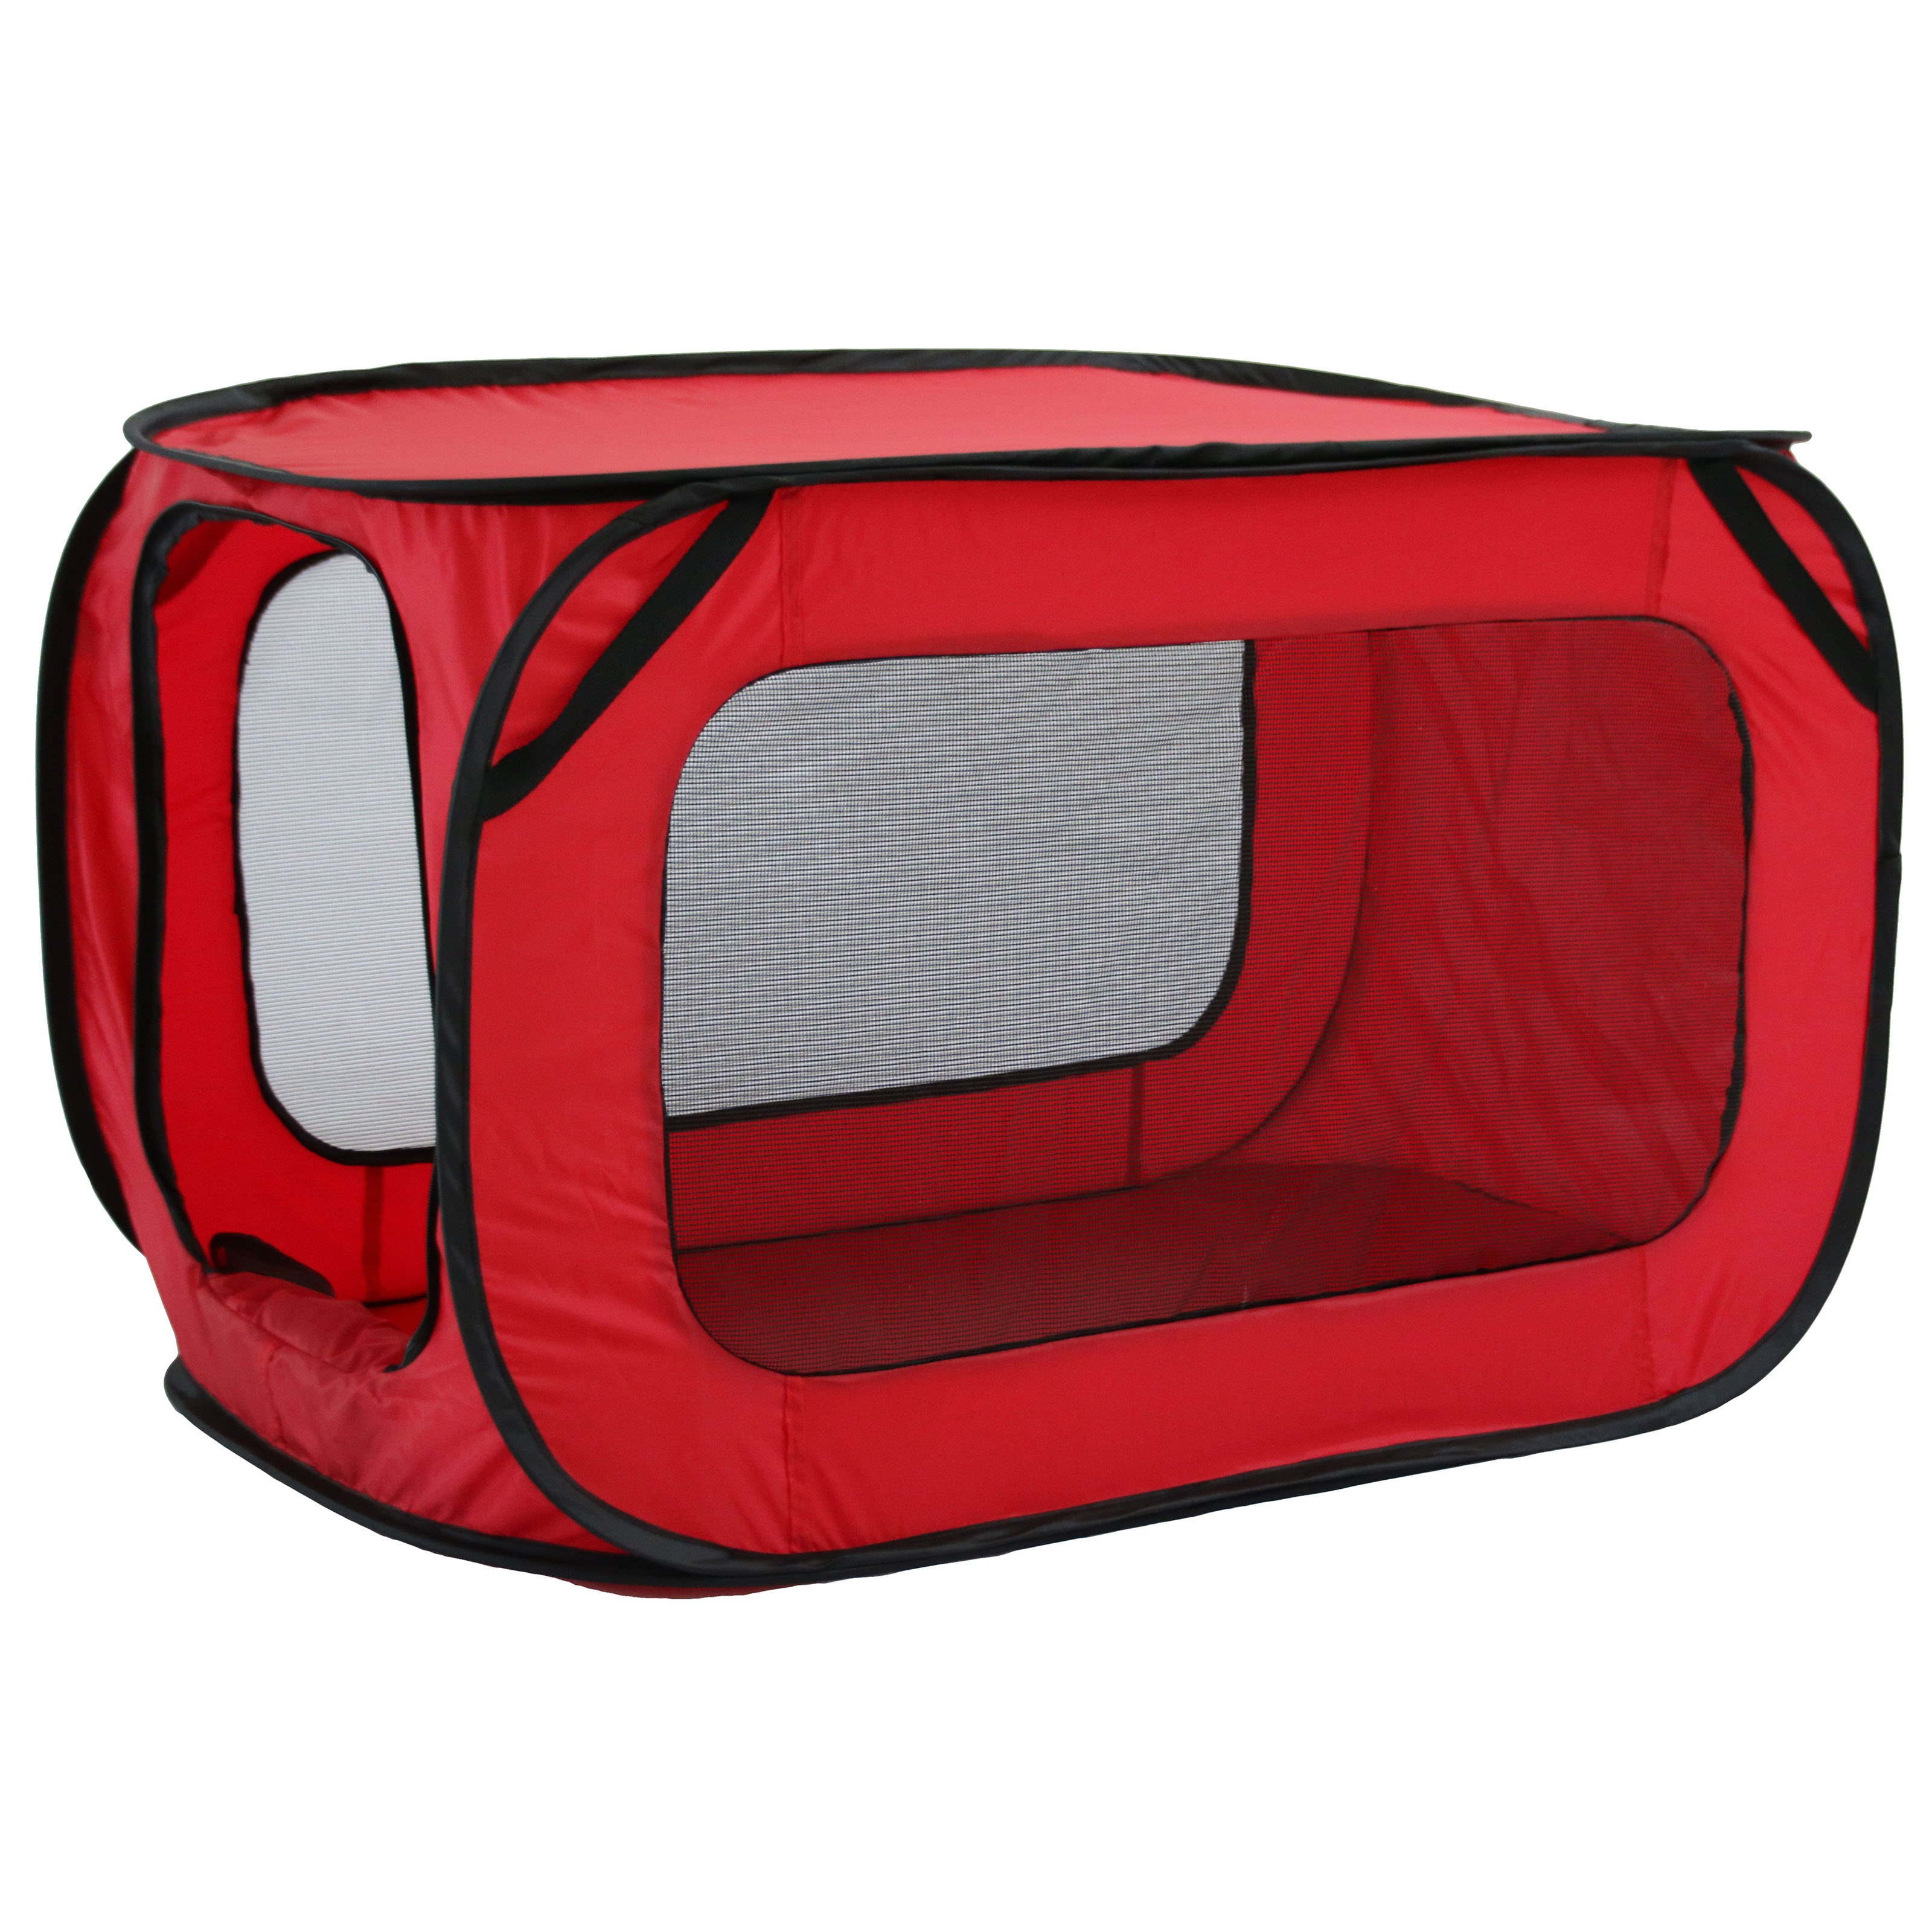 Mesh Canvas Collapsible Outdoor Tent with bottle holder